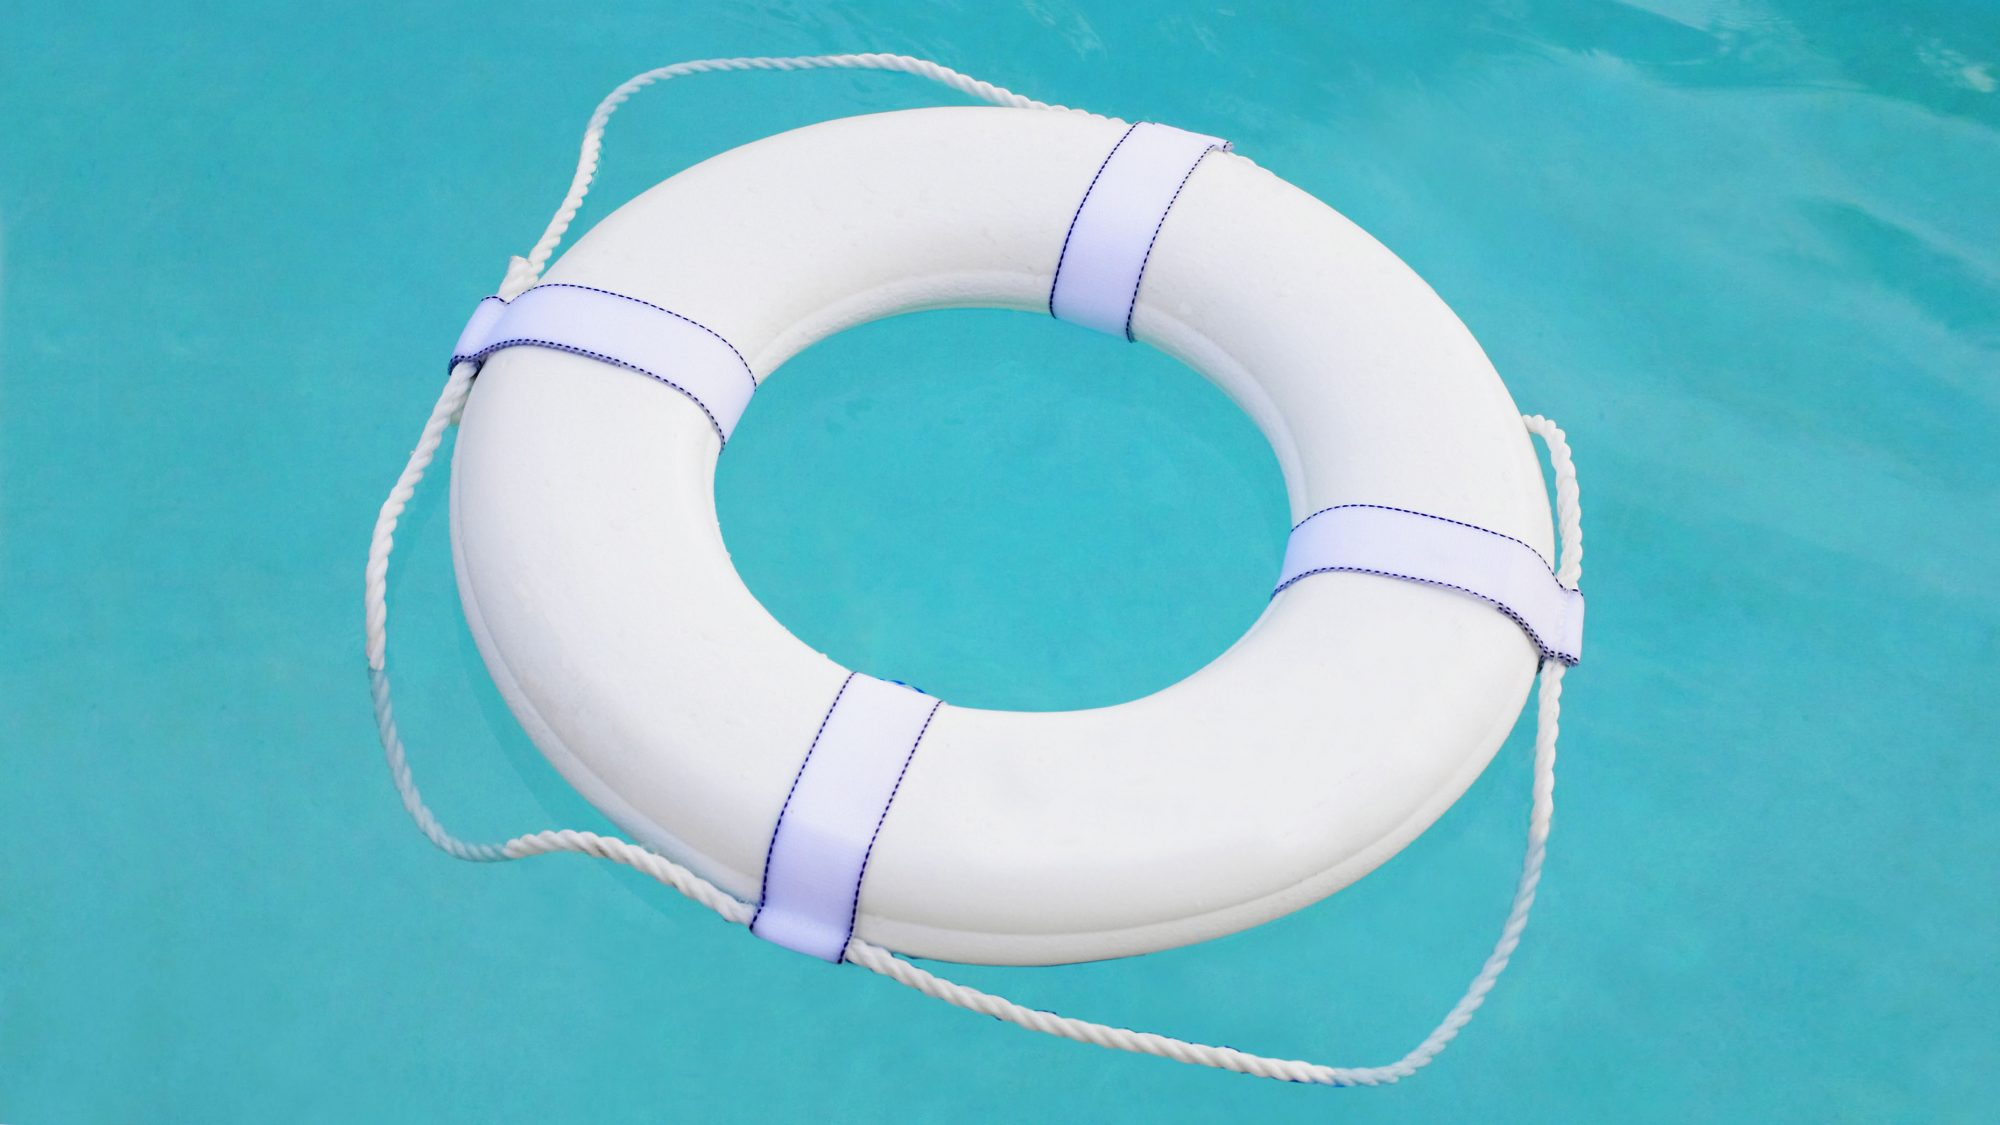 pool-safety-tips: lifeguard ring